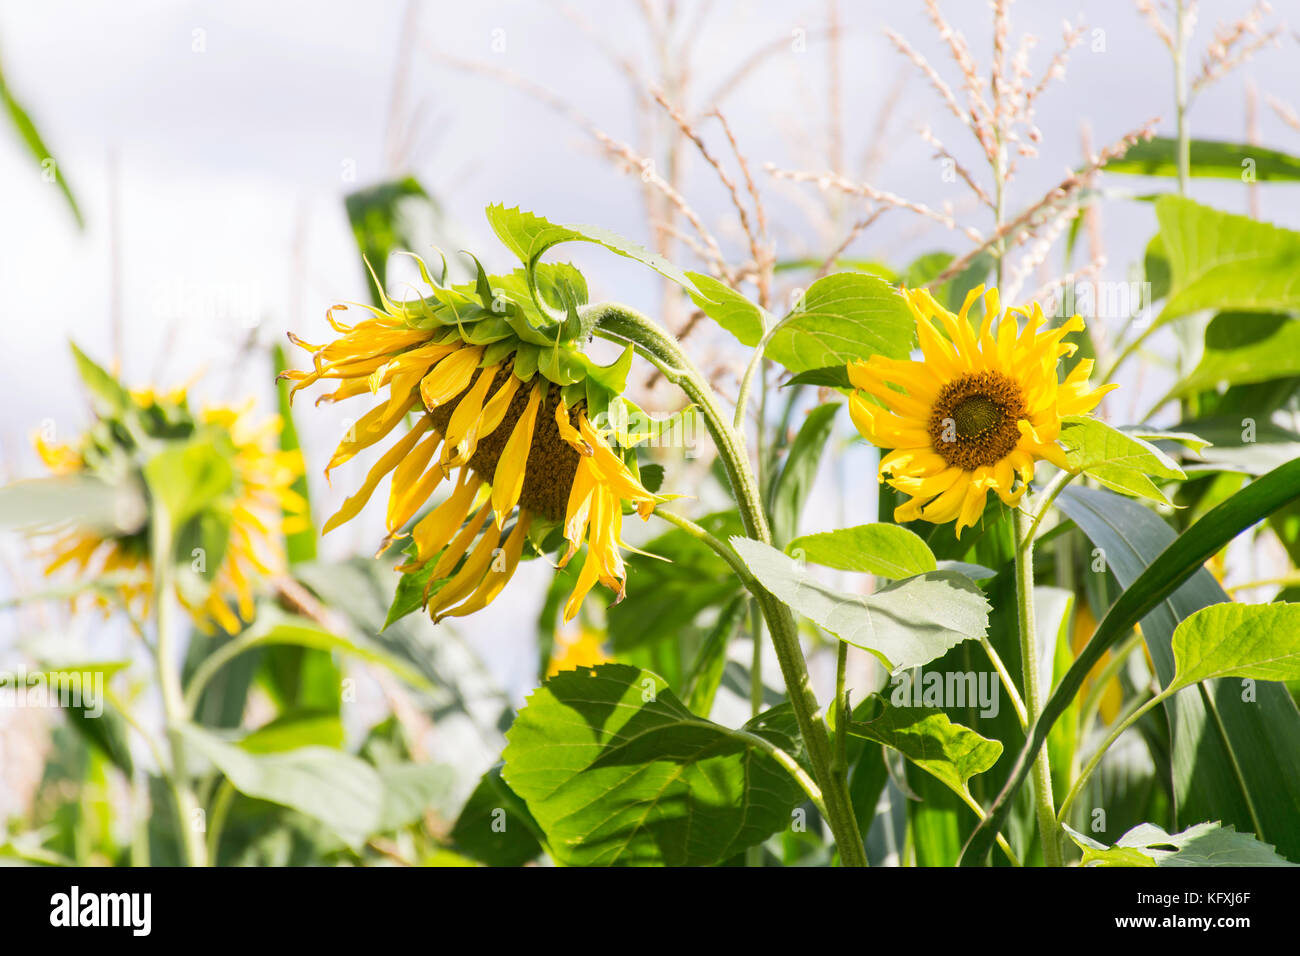 sunflowers in maize - Stock Image